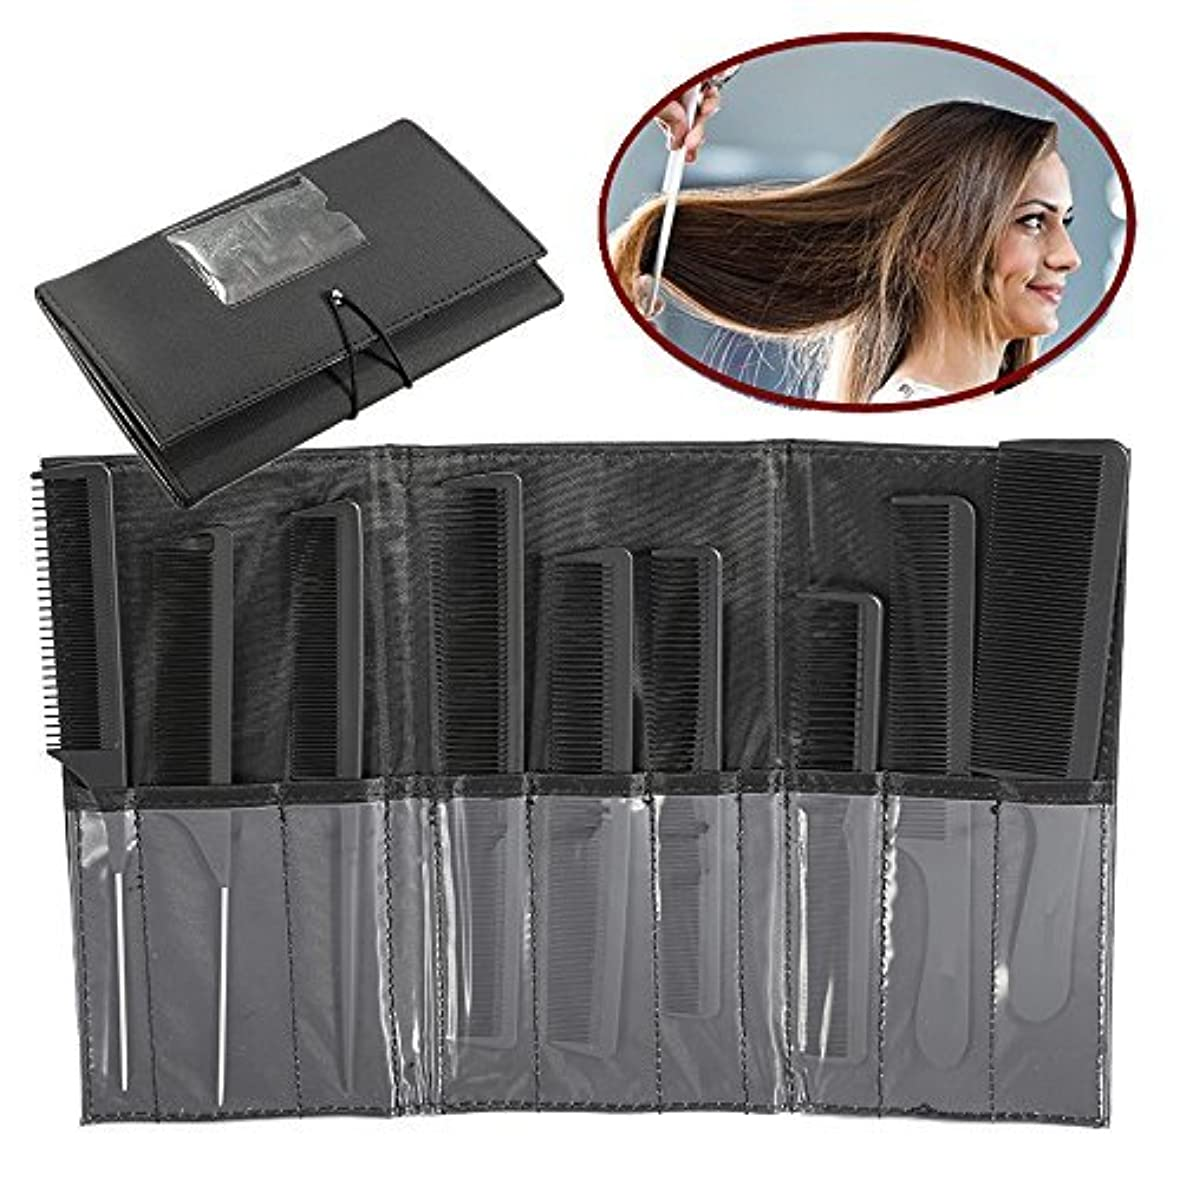 ZJchao Professional Styling Comb Set, 9Pcs Salon Hairdressing Kits, Metal Pintail Teaser/Sharp Tail/Wide Tooth...